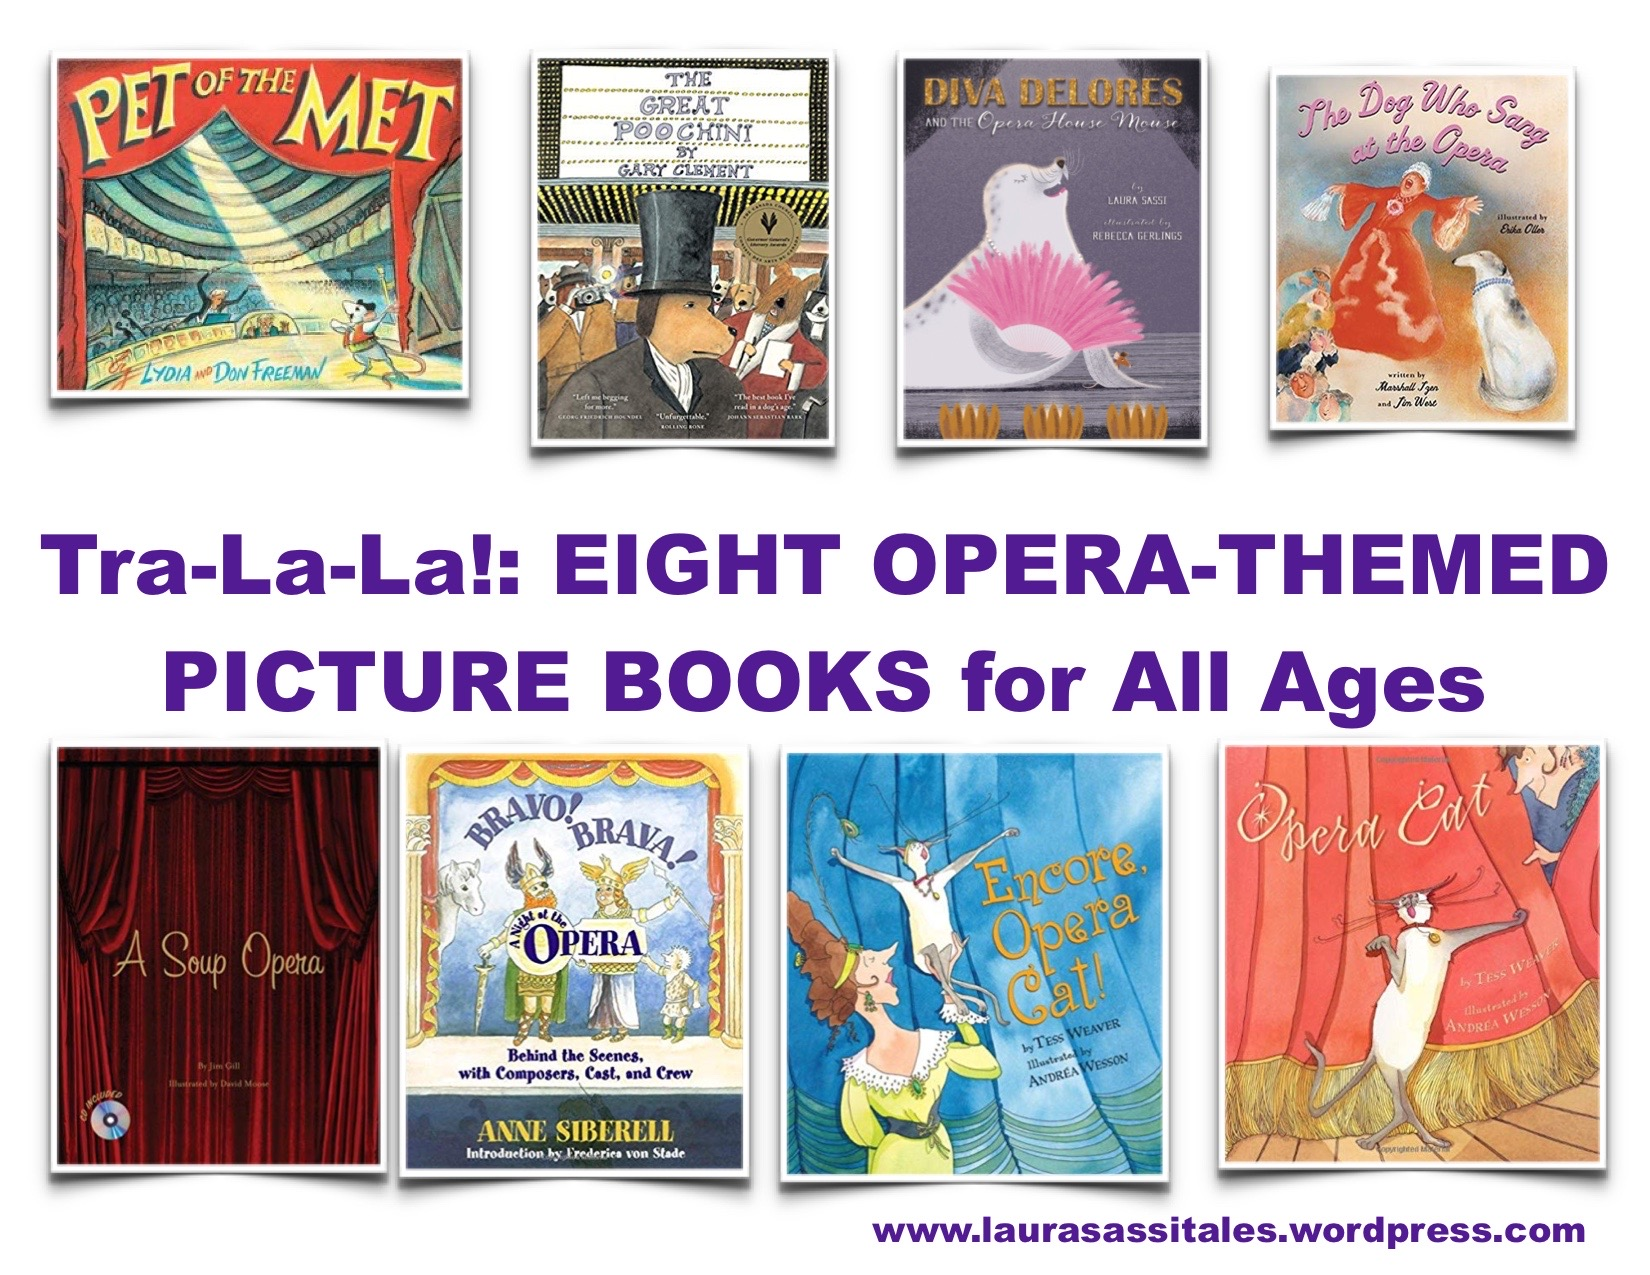 opera-themed picture books